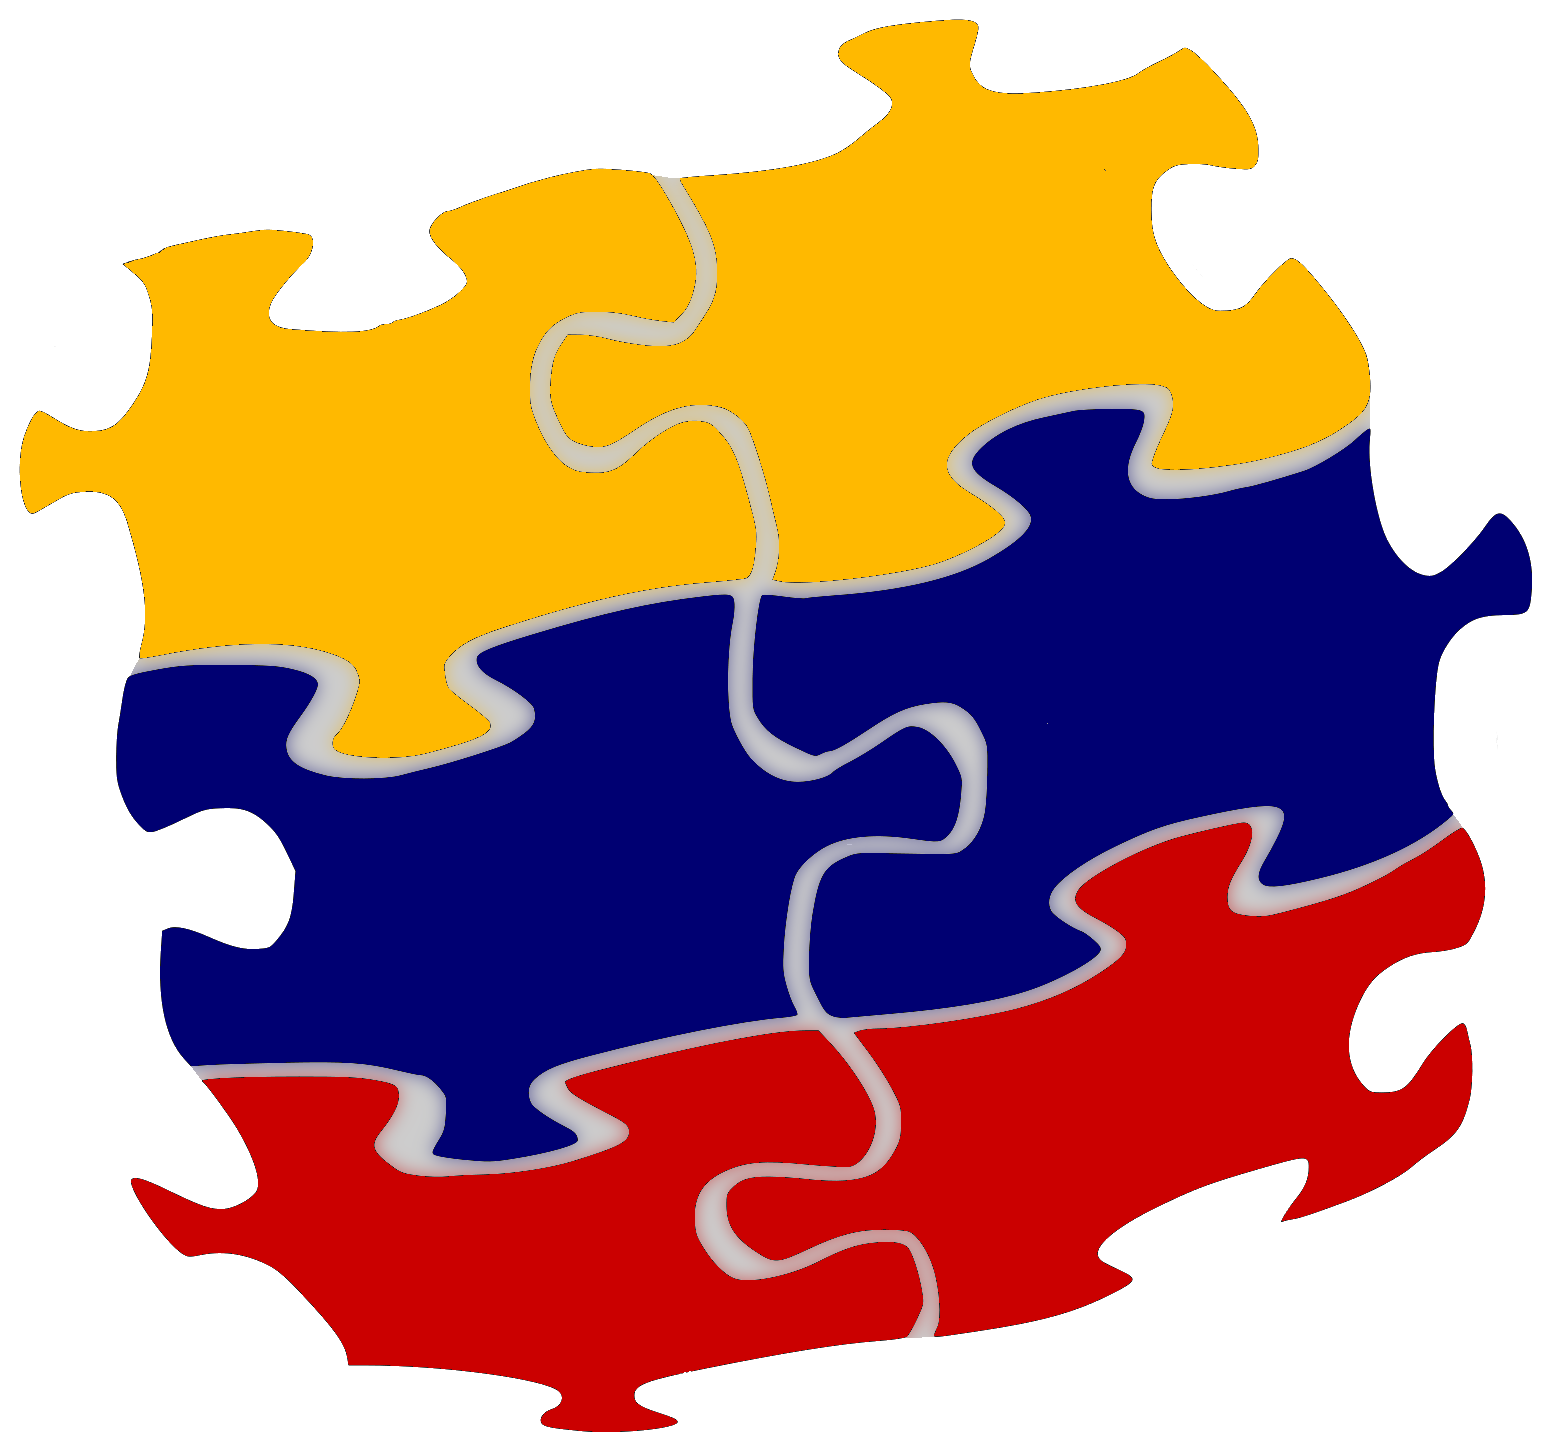 Puzzle clipart project summary. File wikiproject colombia logo